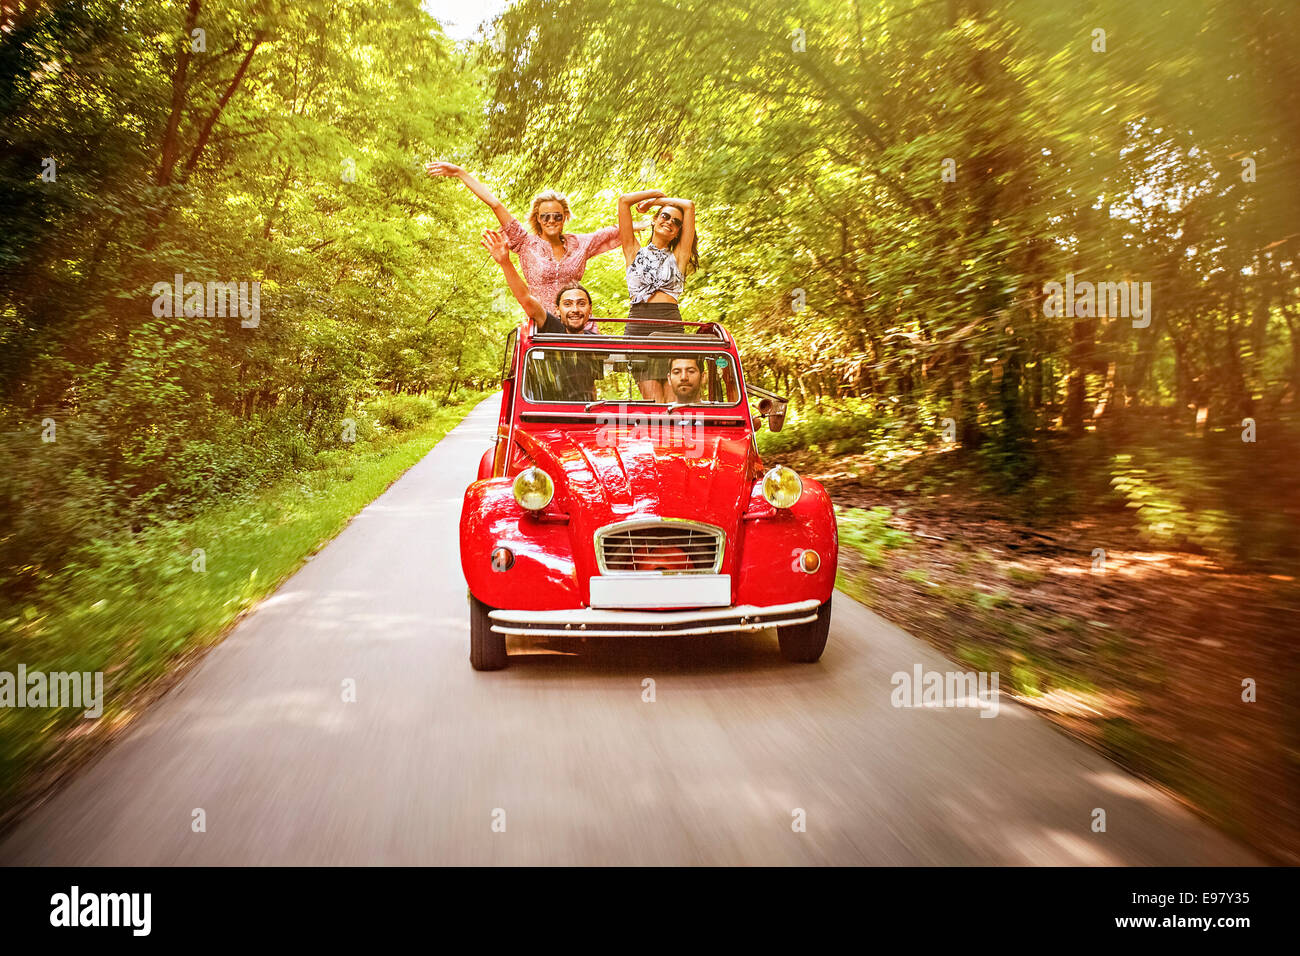 Young people in red vintage car having fun - Stock Image